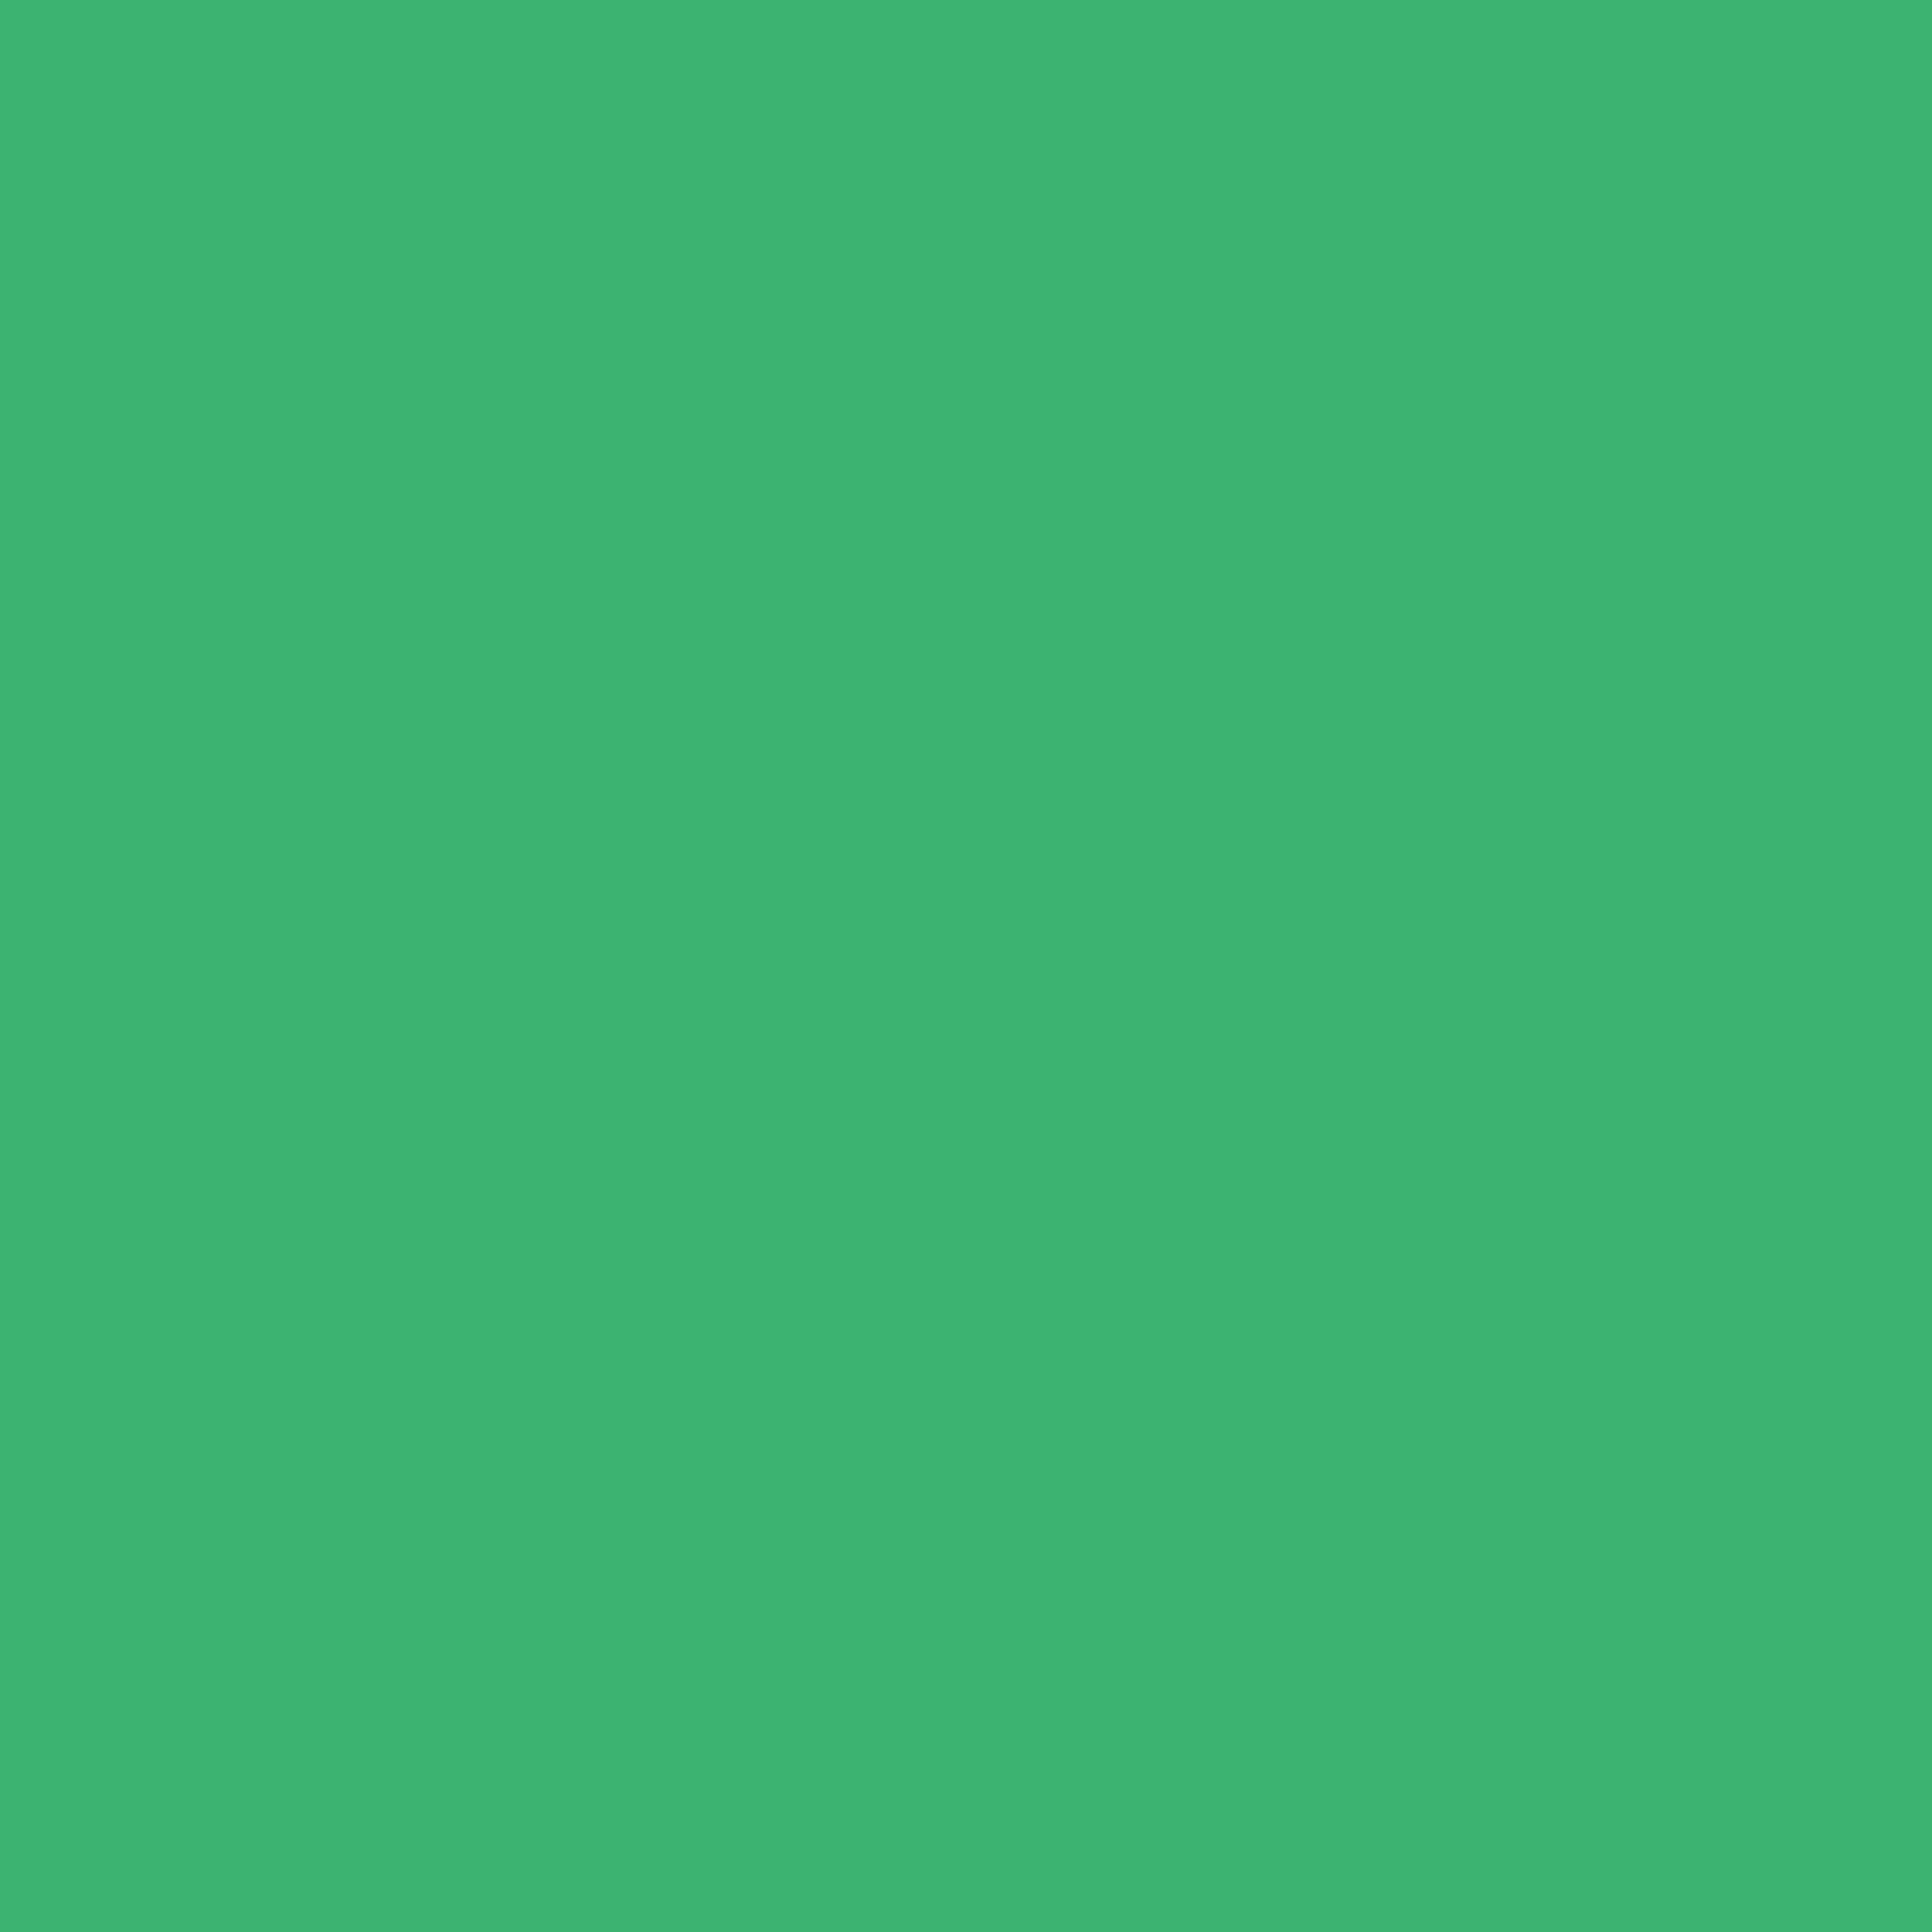 2732x2732 Medium Sea Green Solid Color Background